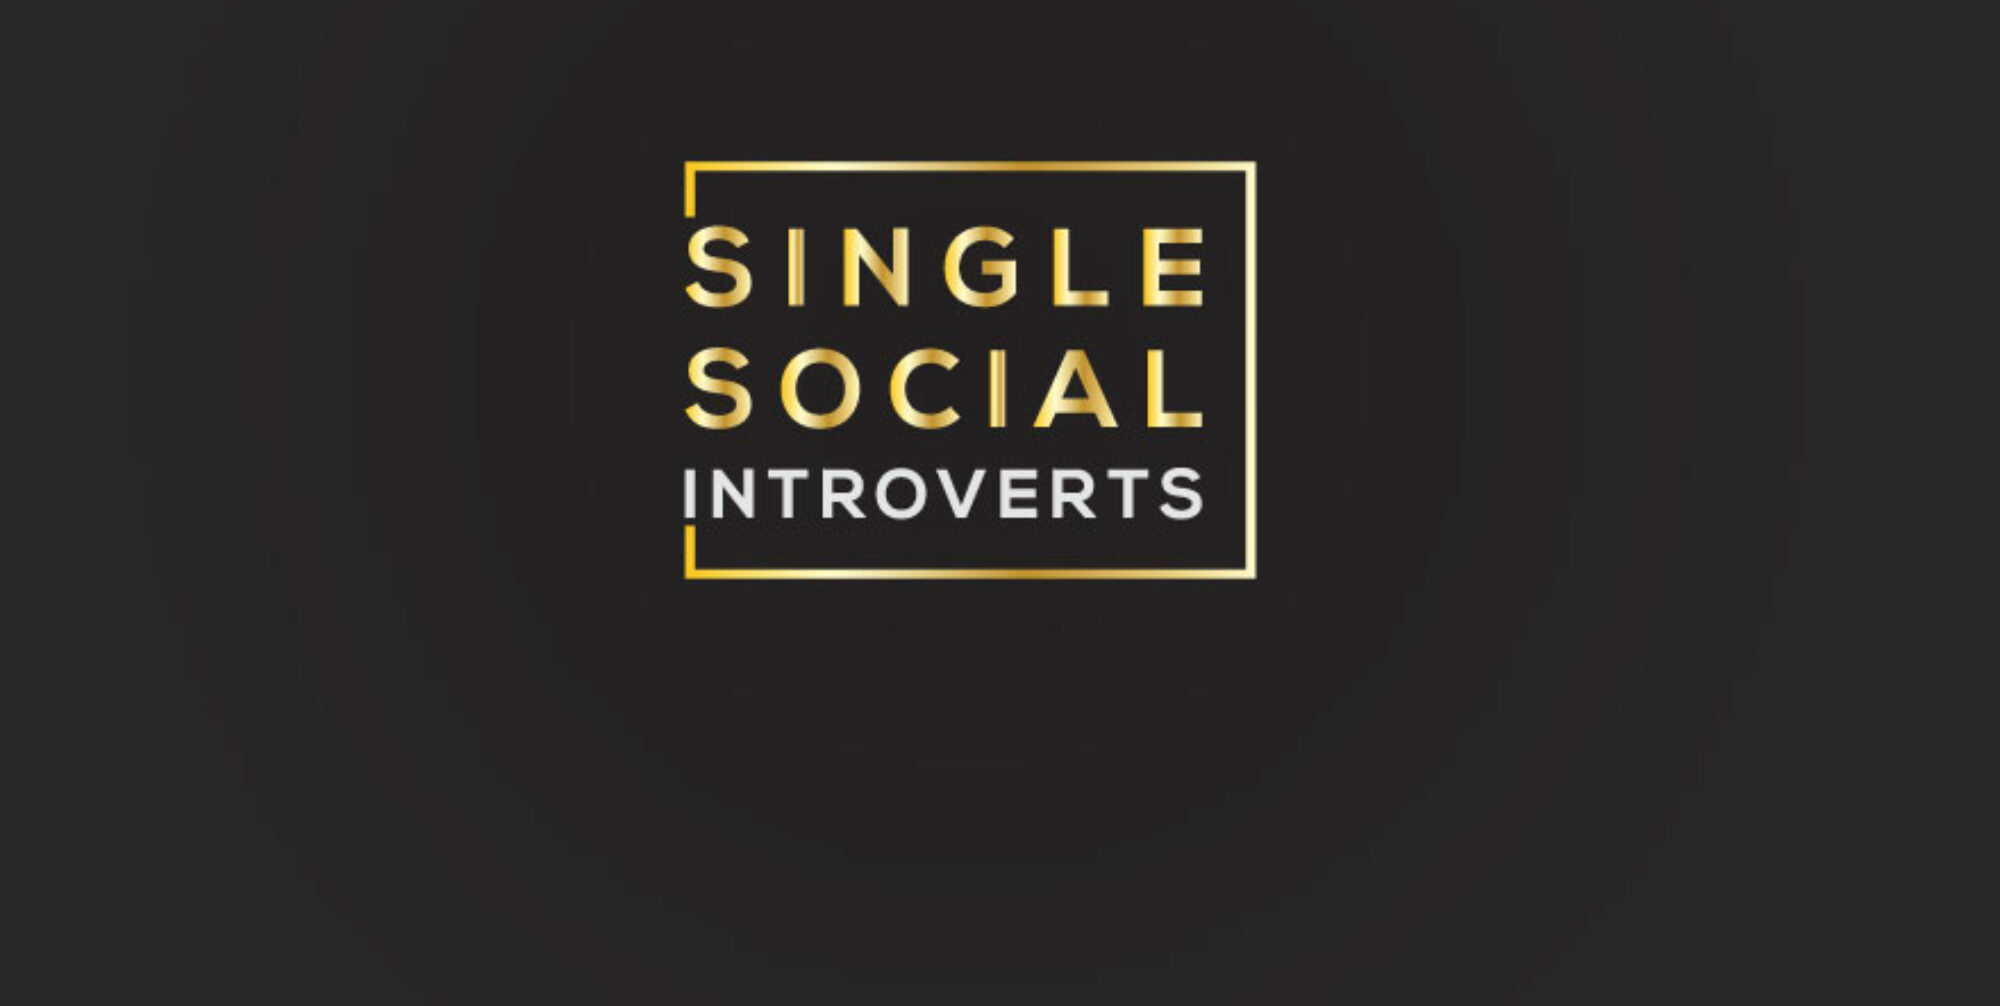 Single Social introverts